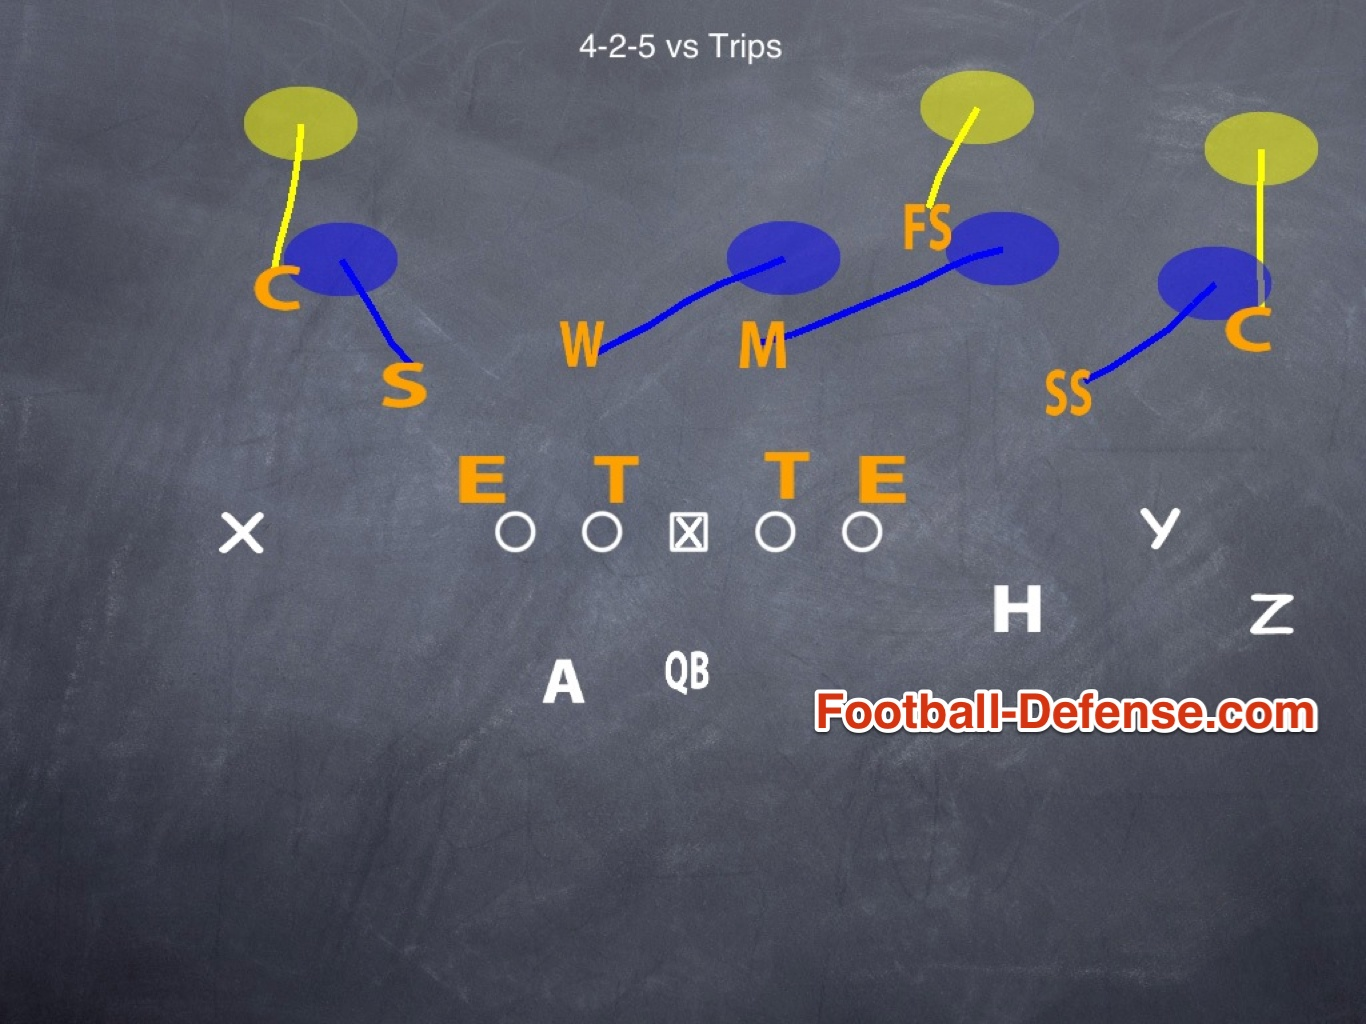 hight resolution of coaching your 4 2 5 defense to defend trips formations